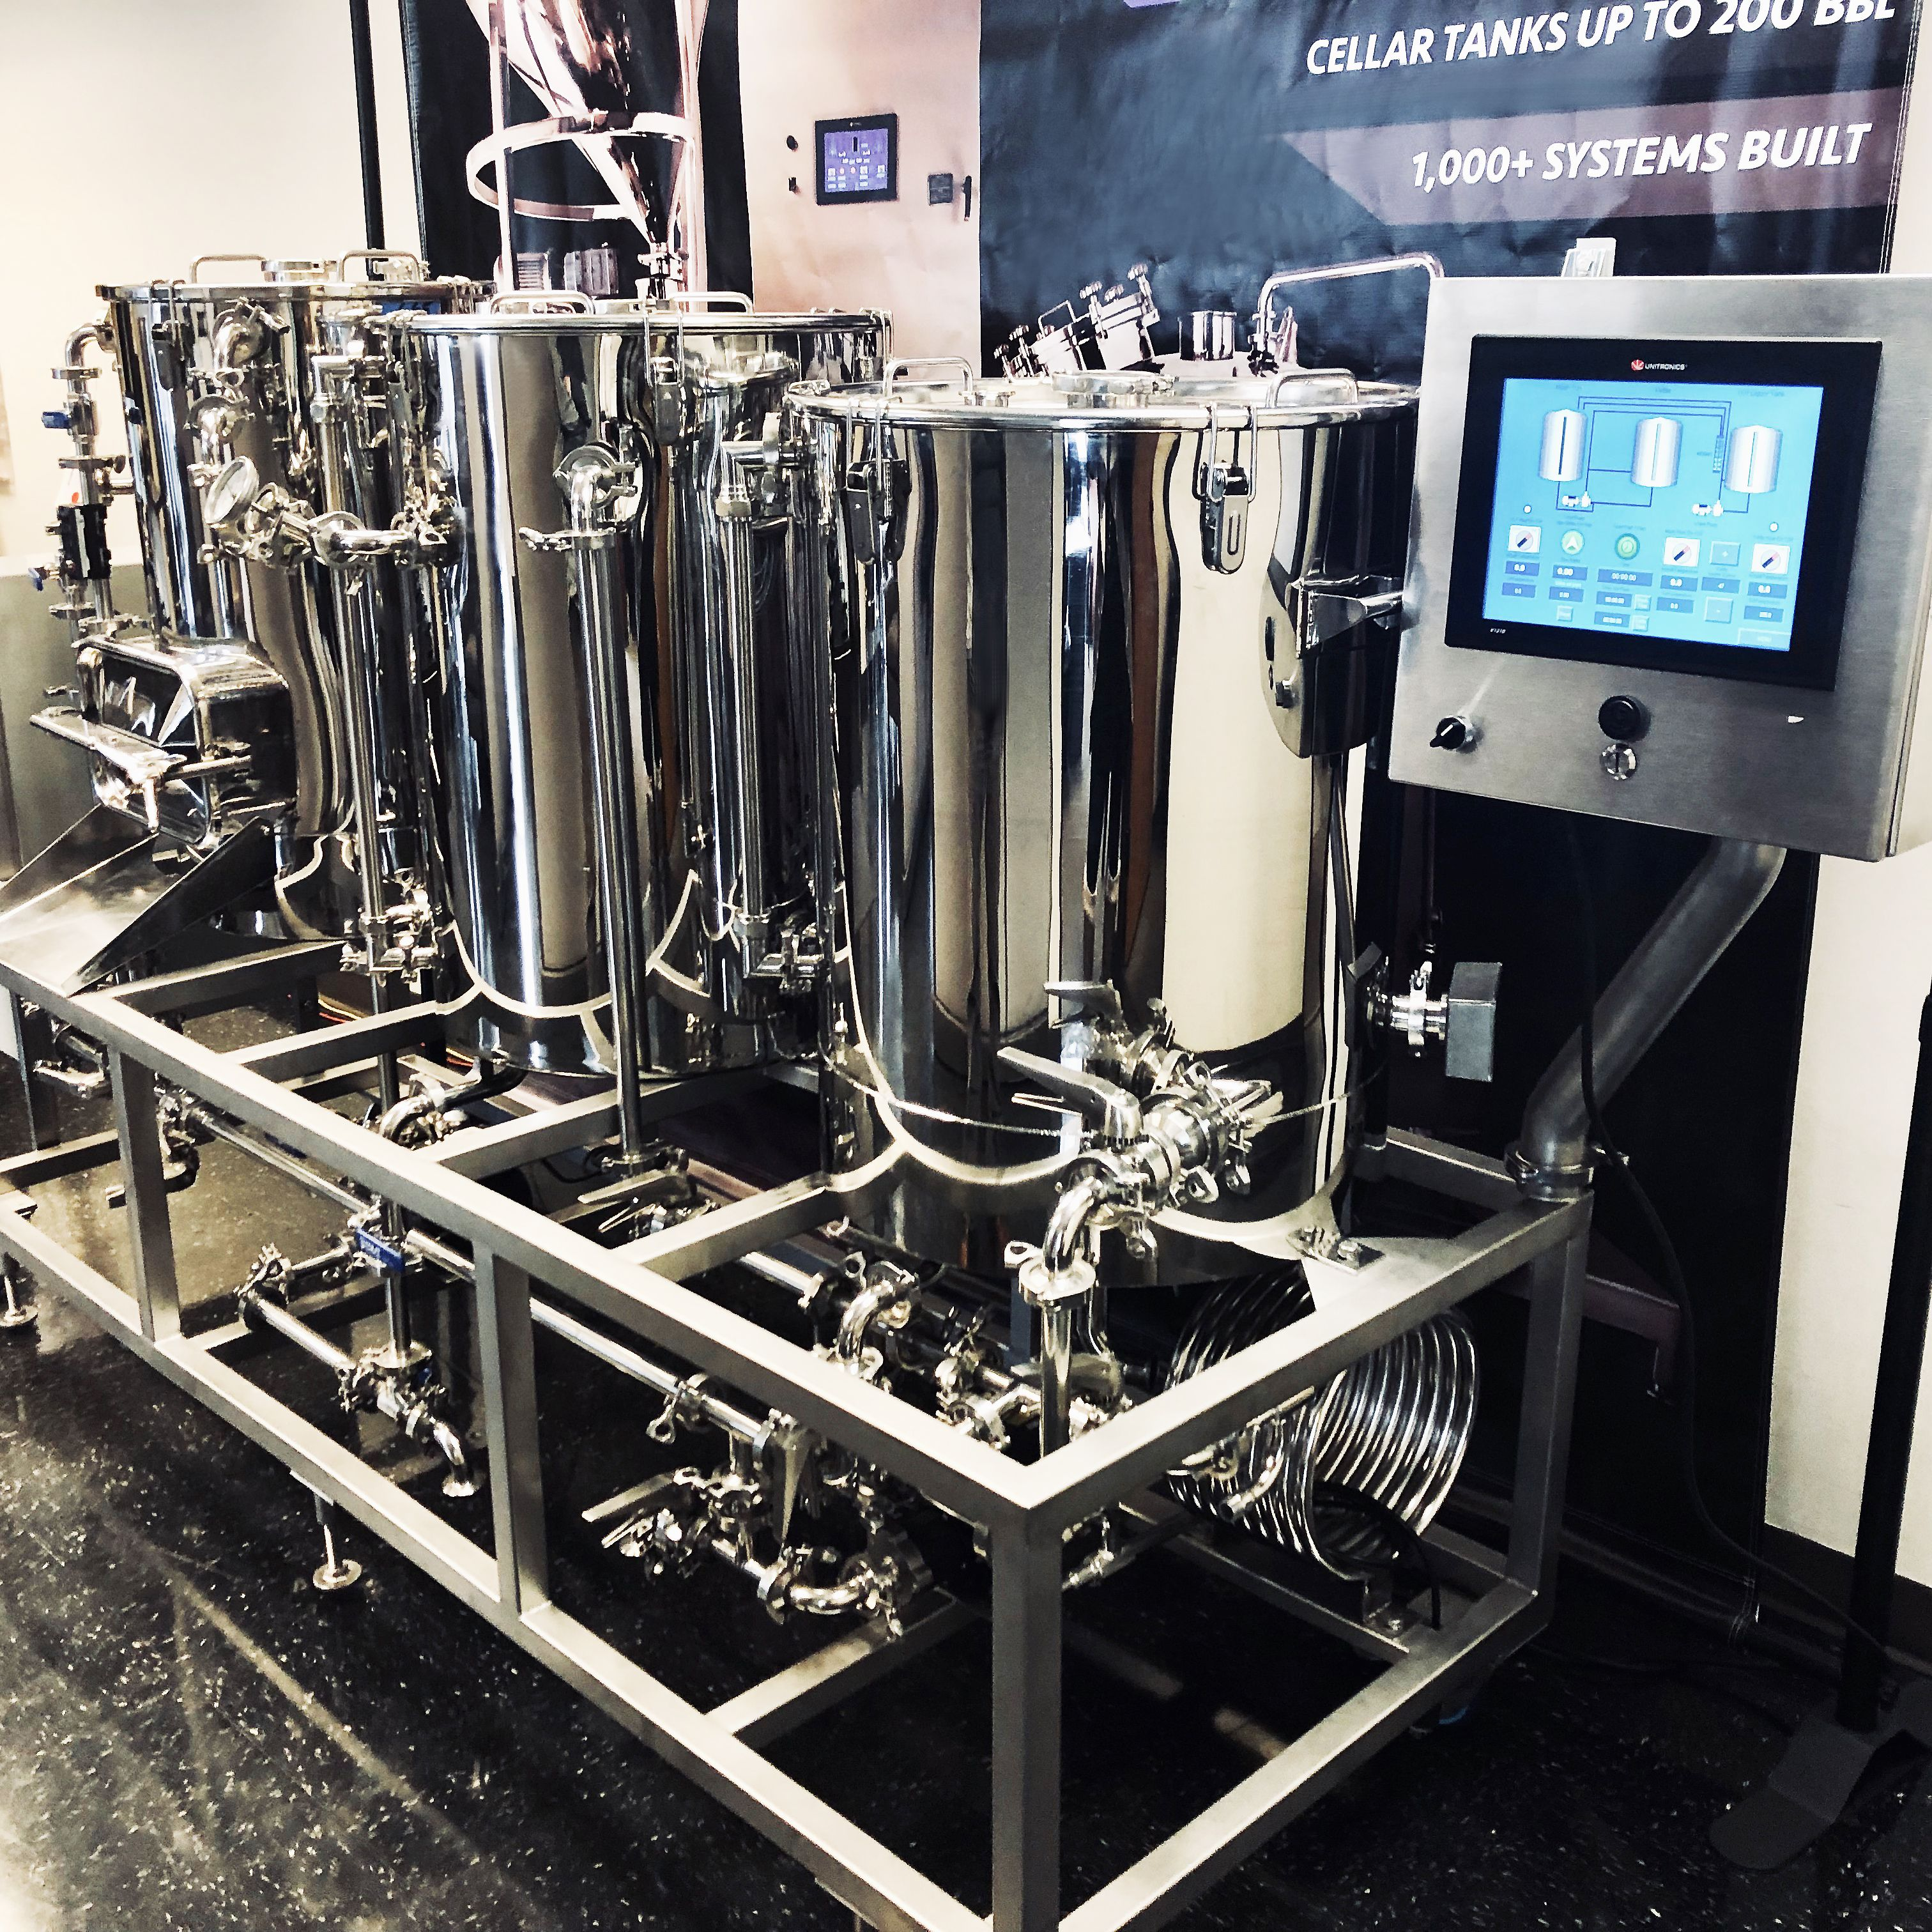 Sold Another Pro Grade 1 Bbl Brewing System Is Headed Out This System Will Be Used As A Pilot System In 2020 Home Brewery Brewing Equipment Home Brewing Equipment